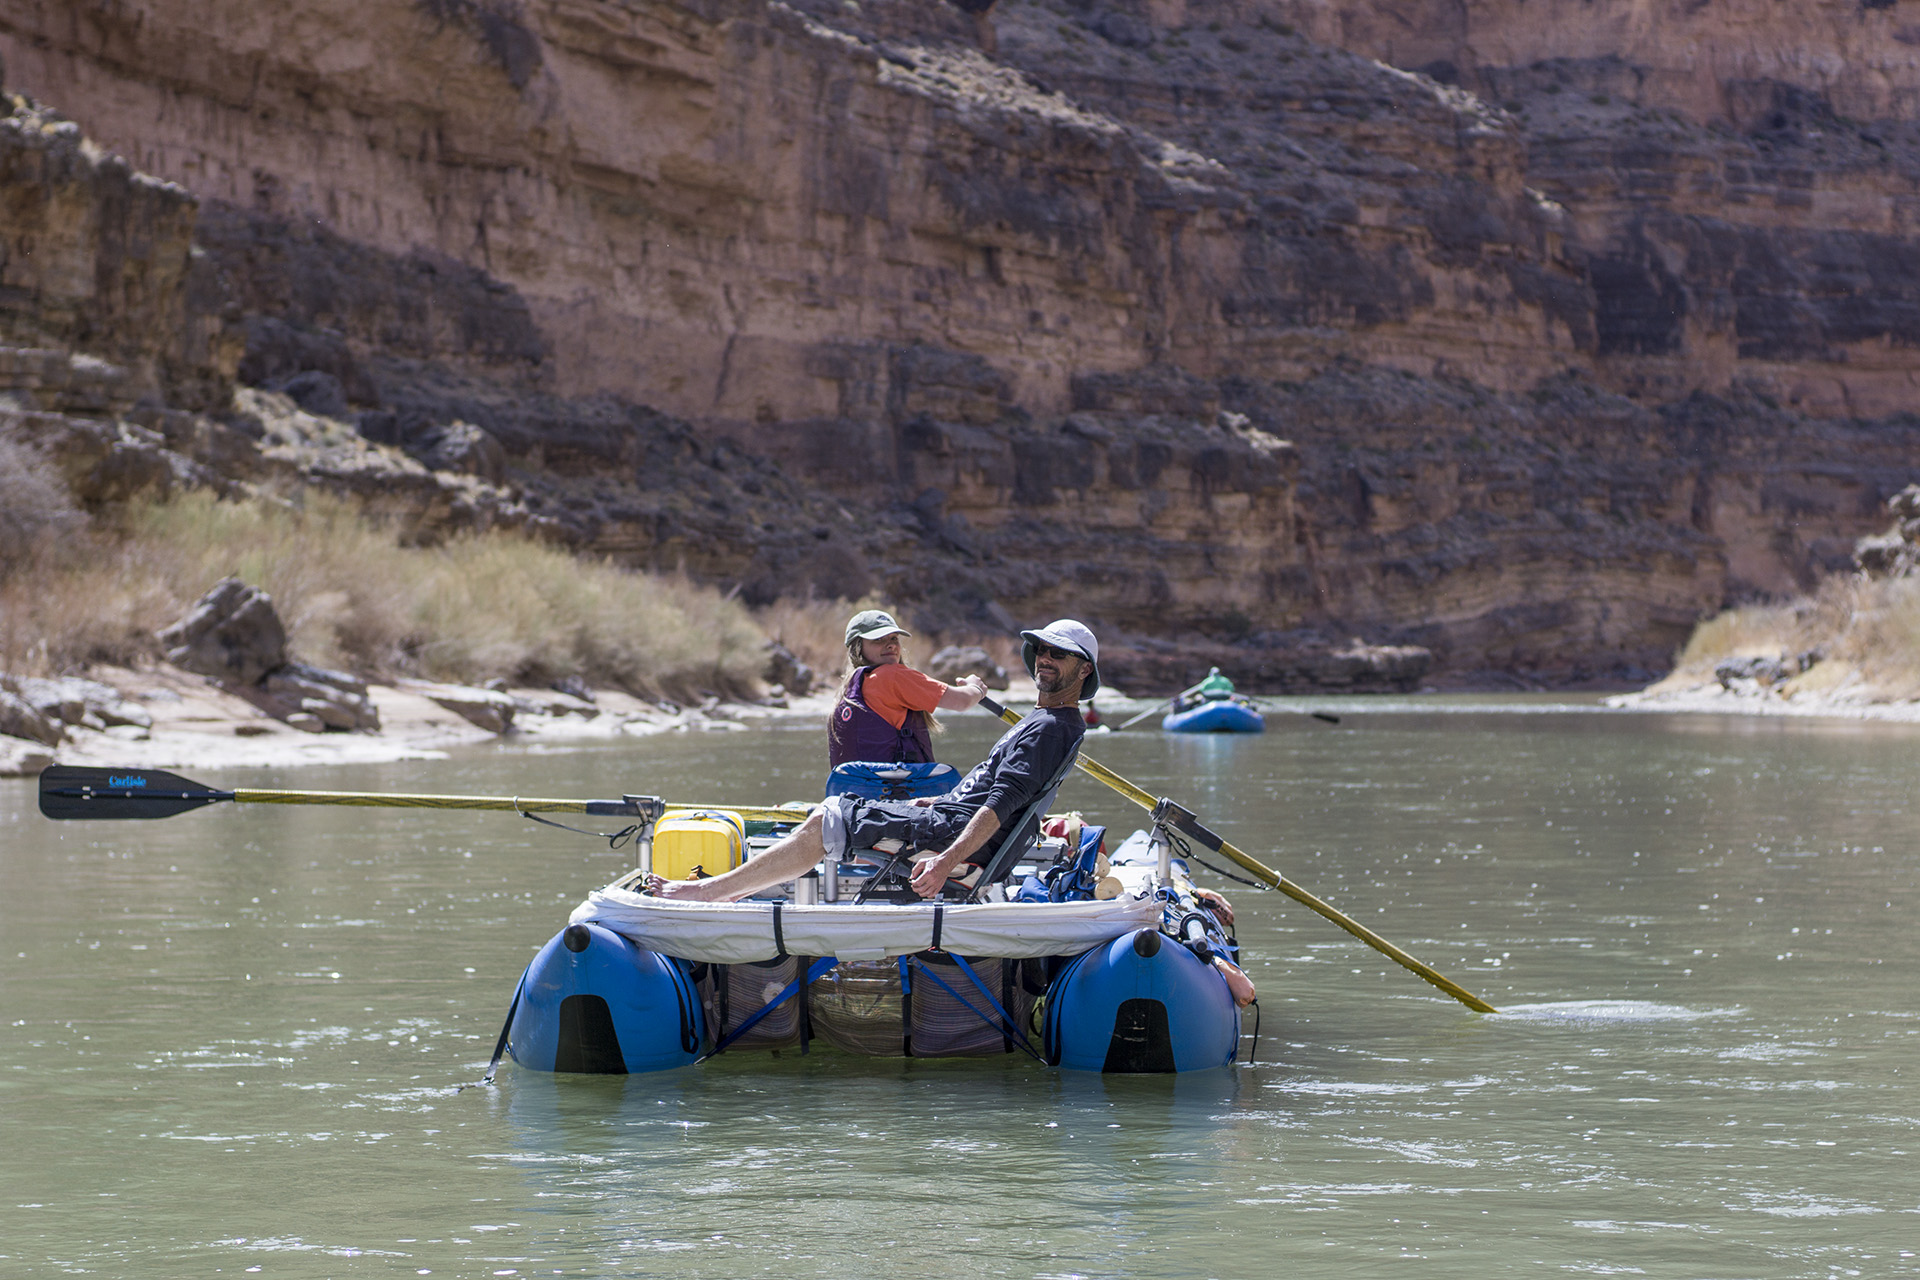 The San Juan River is at the center of the battle to protect the integrity of the Antiquities Act and was a key part of the landscape that was removed when Bears Ears National Monument was shrunk. | Image Evan Stafford – American Whitewater Communications Director